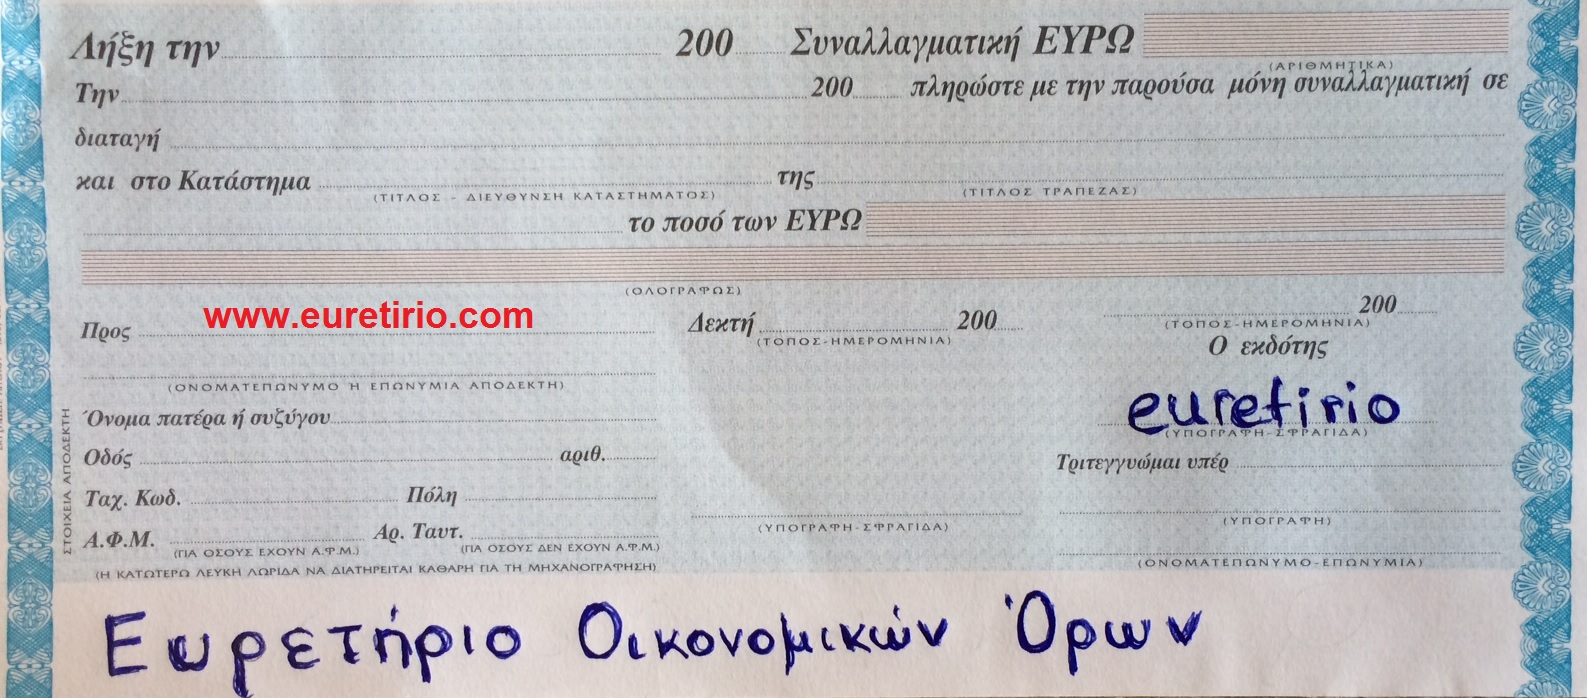 Synallagmatiki (bill of exchange) - Ευρετηριο